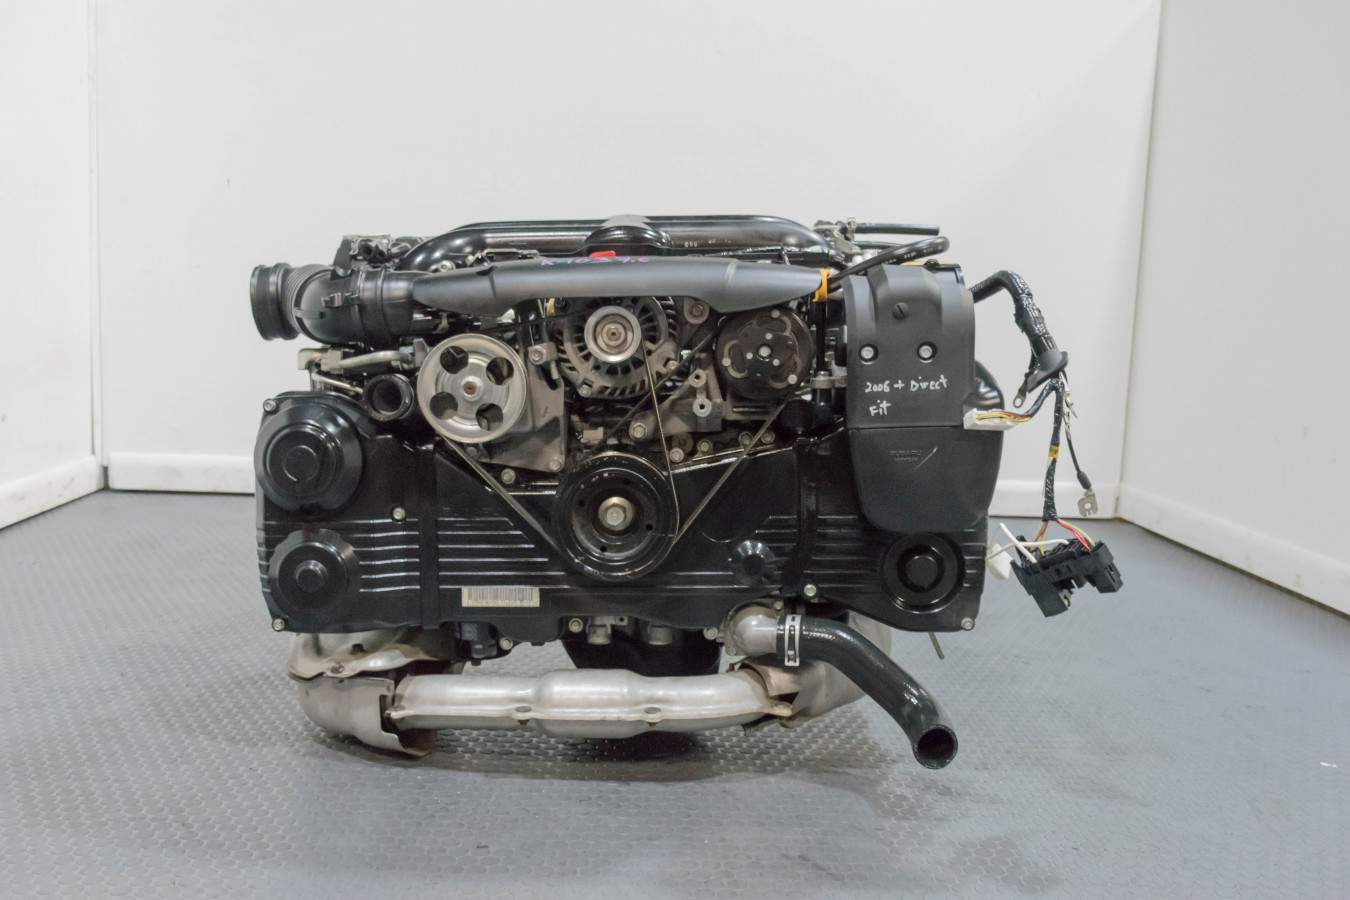 JDM EJ205 Engine With IHI Turbo and Single AVCS Replacement